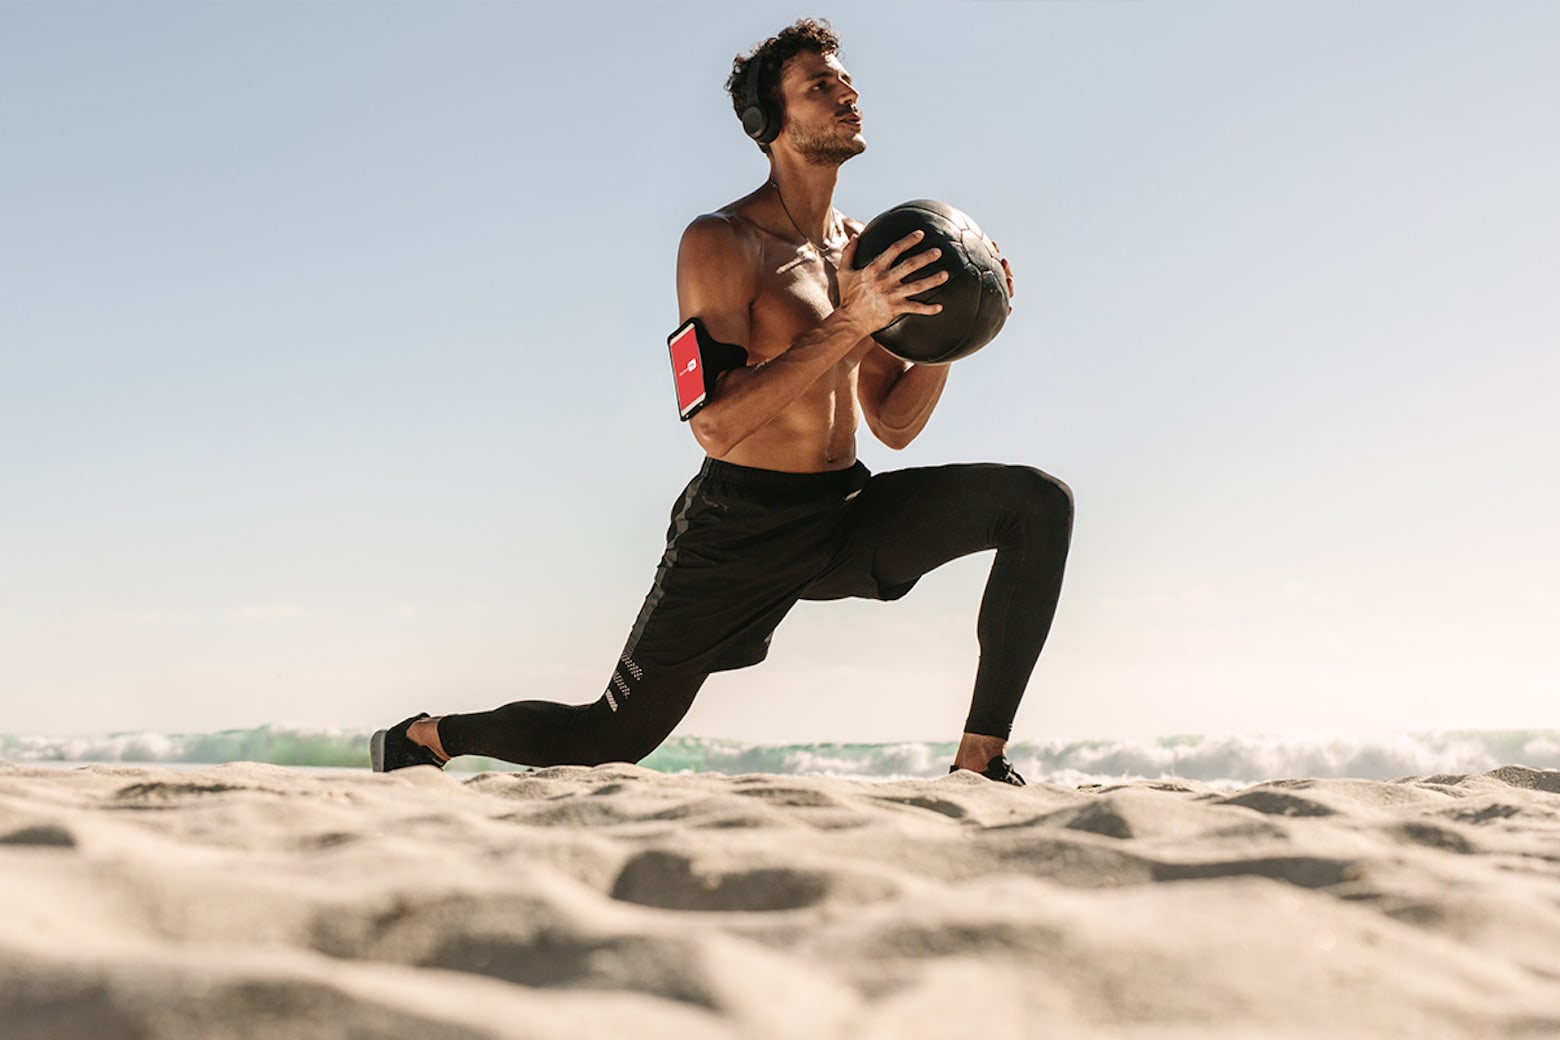 Kick-start your fitness goals in 2021 with more than 90% off this top-rated app